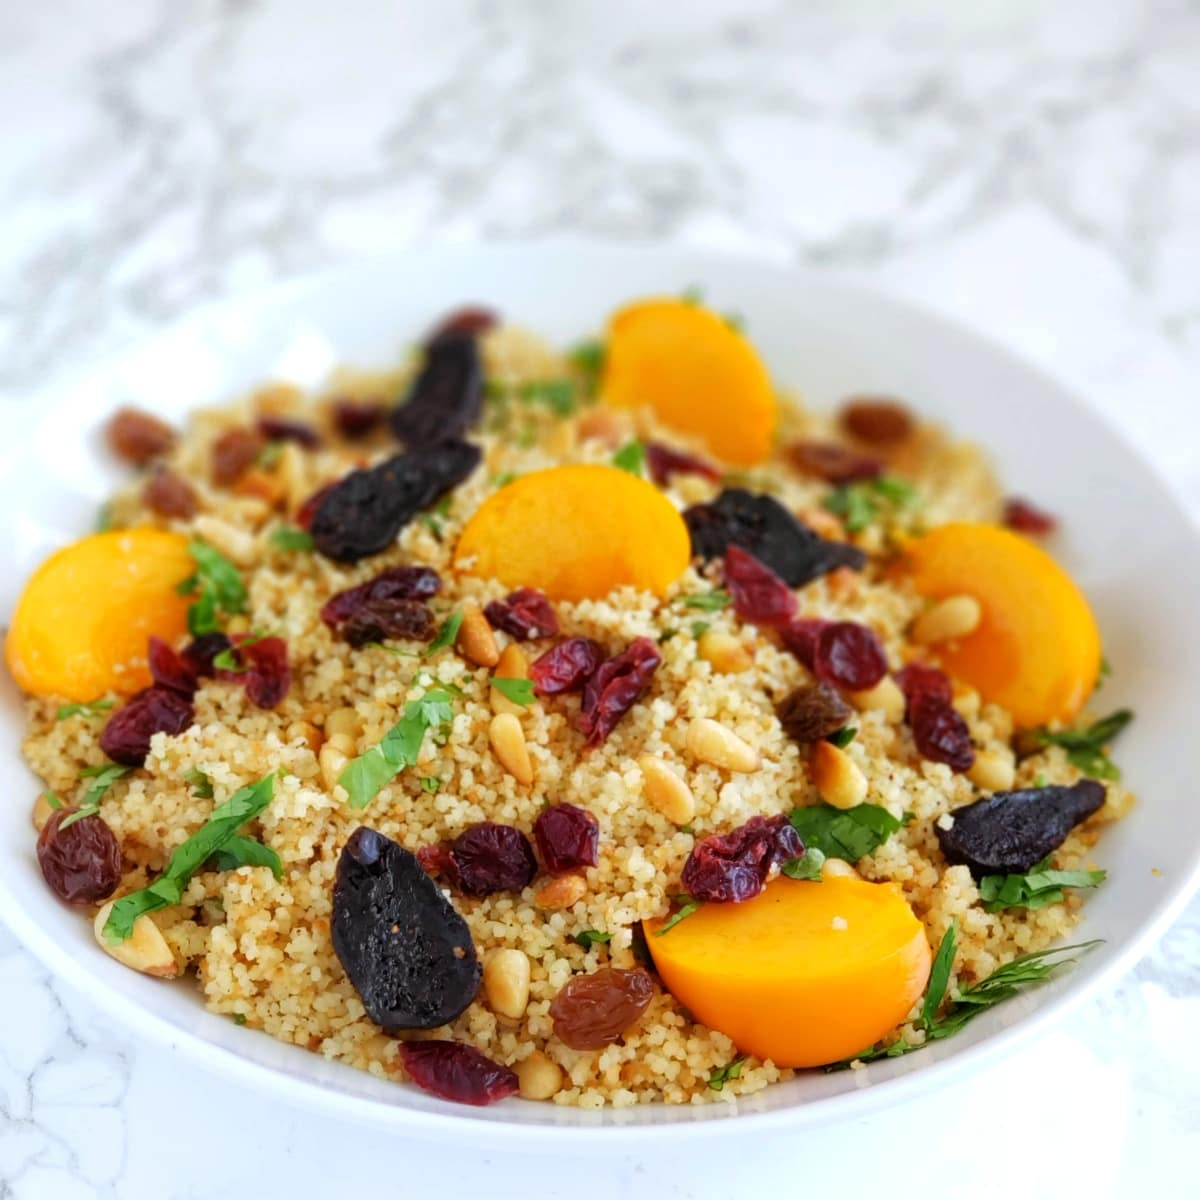 Fruits on top of couscous